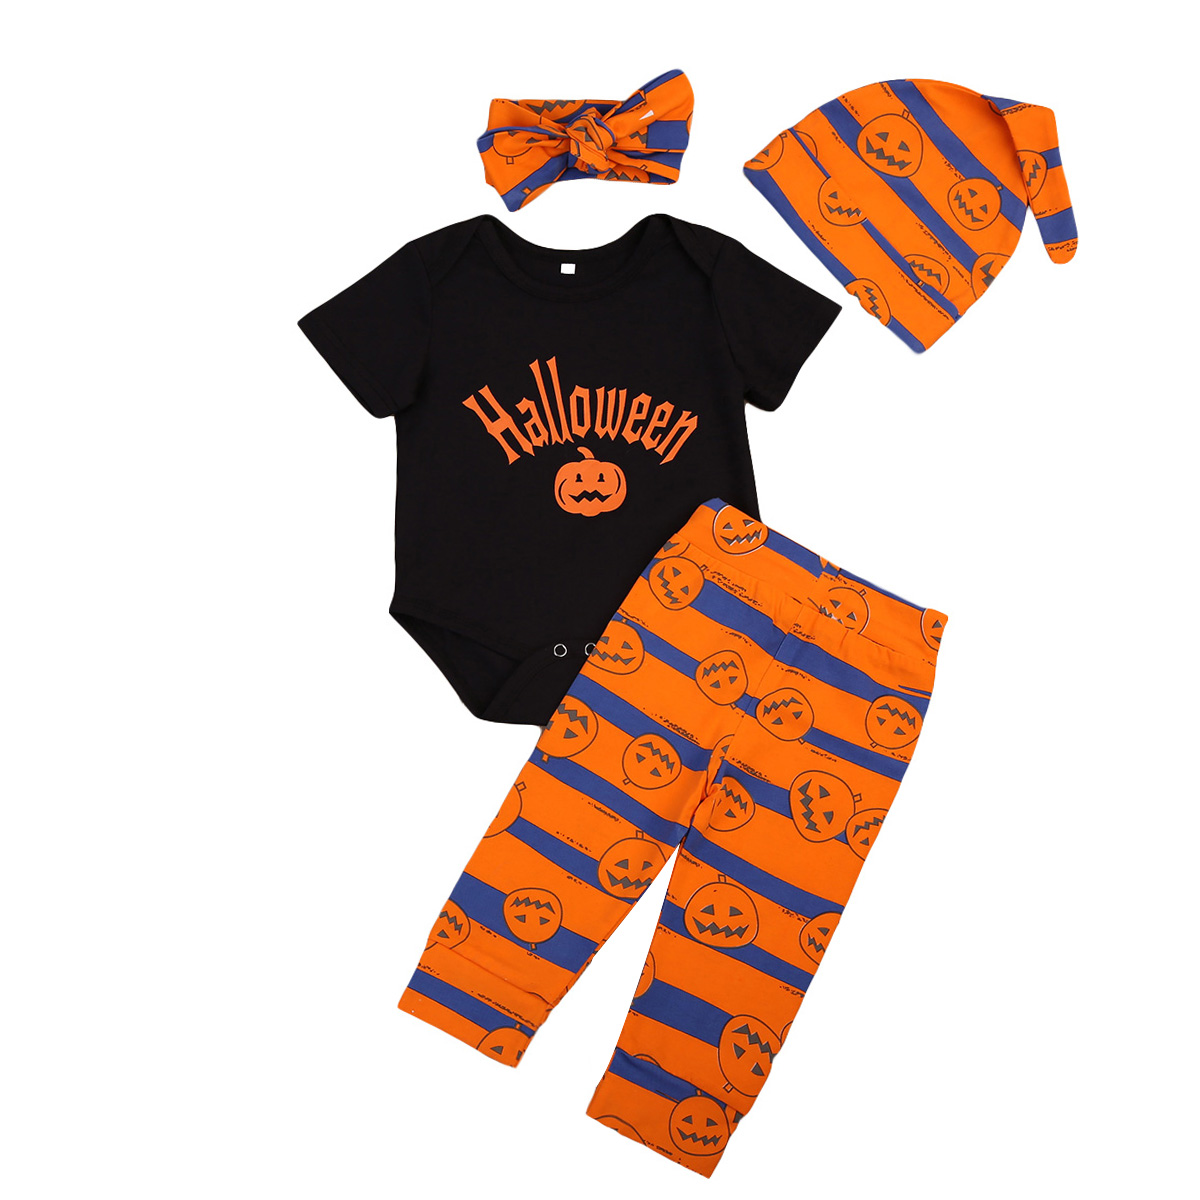 4pcs Per Set Halloween Newborn Baby Boy Girl Jumpsuit Romper Pants Outfits Costume 0-18M ...